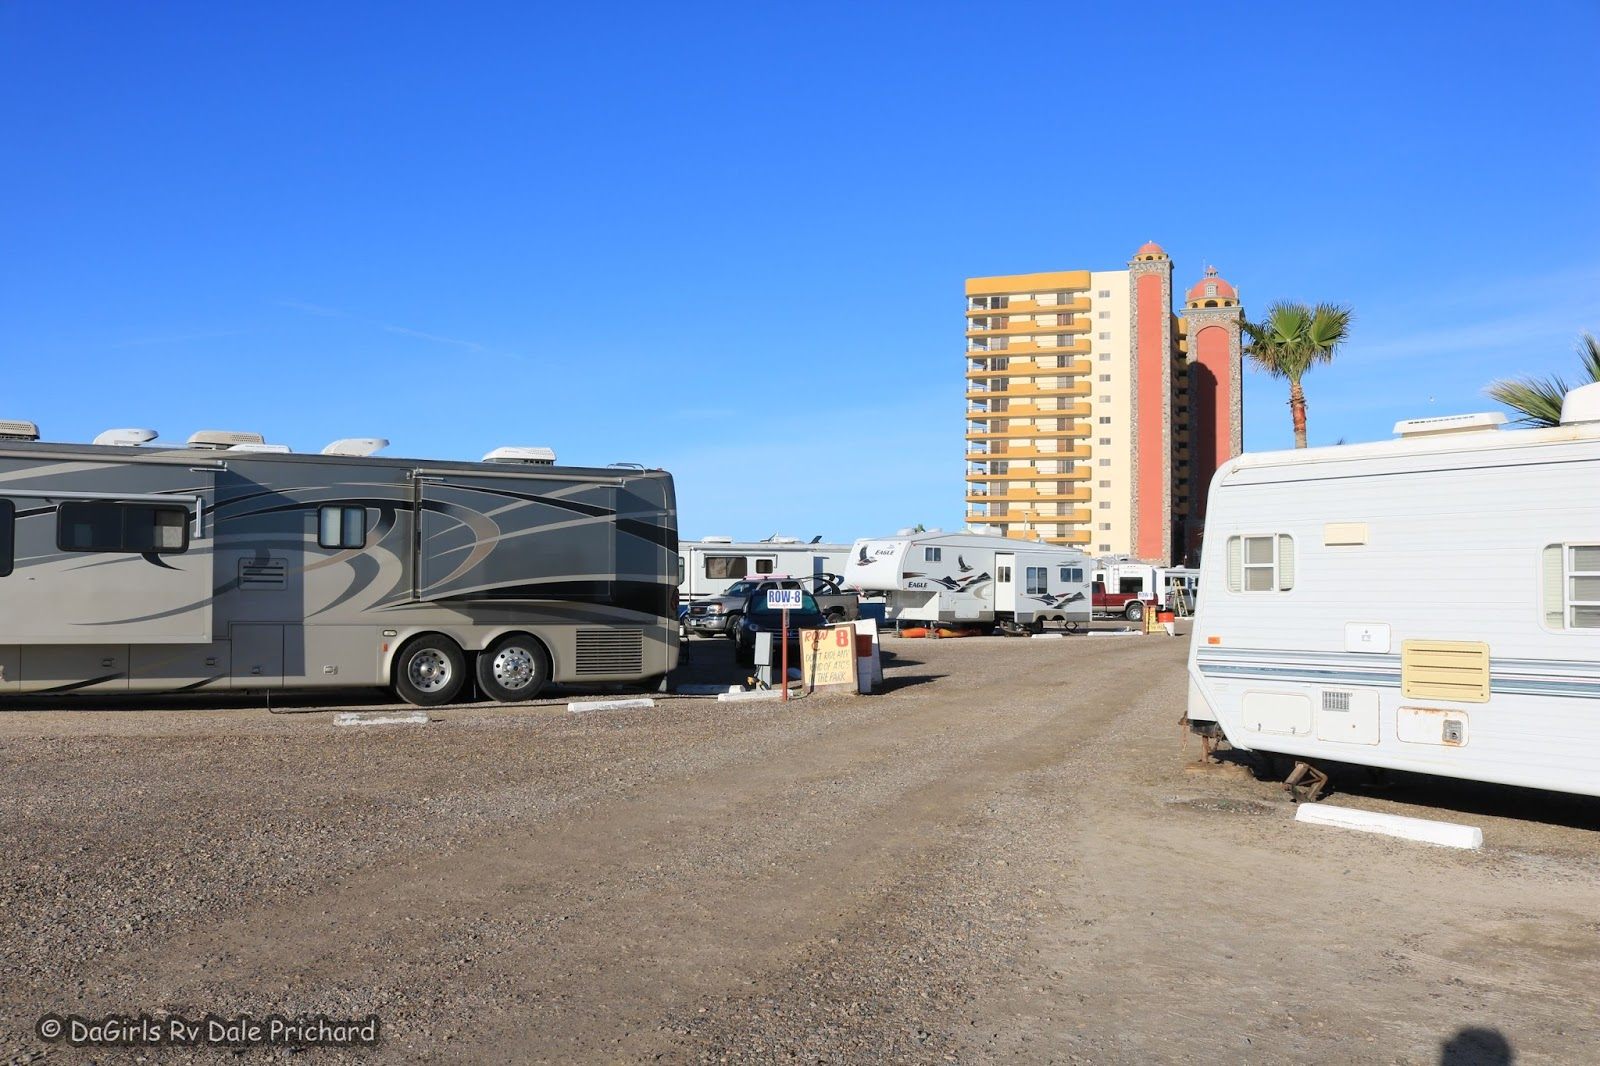 Dagirls Rv Travels My Turn Puerto Penasco Sonora Mexico